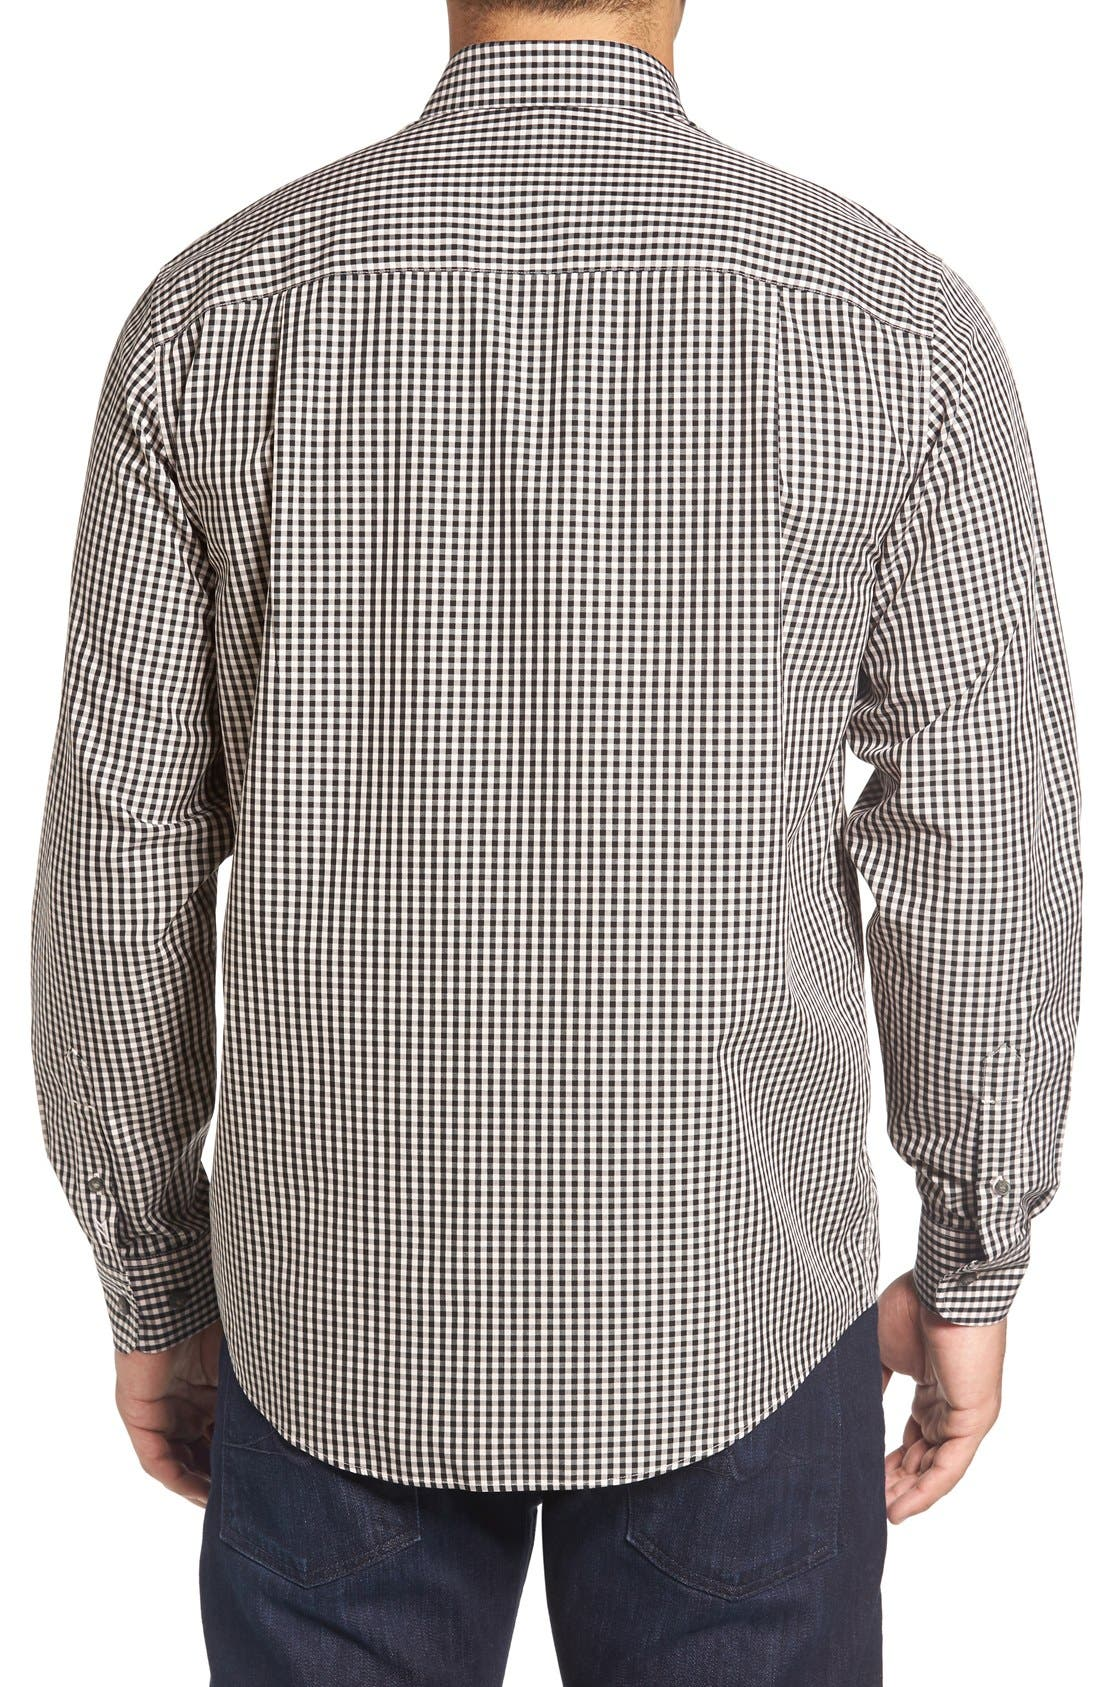 'Willard' Check Sport Shirt,                             Alternate thumbnail 3, color,                             Quaint